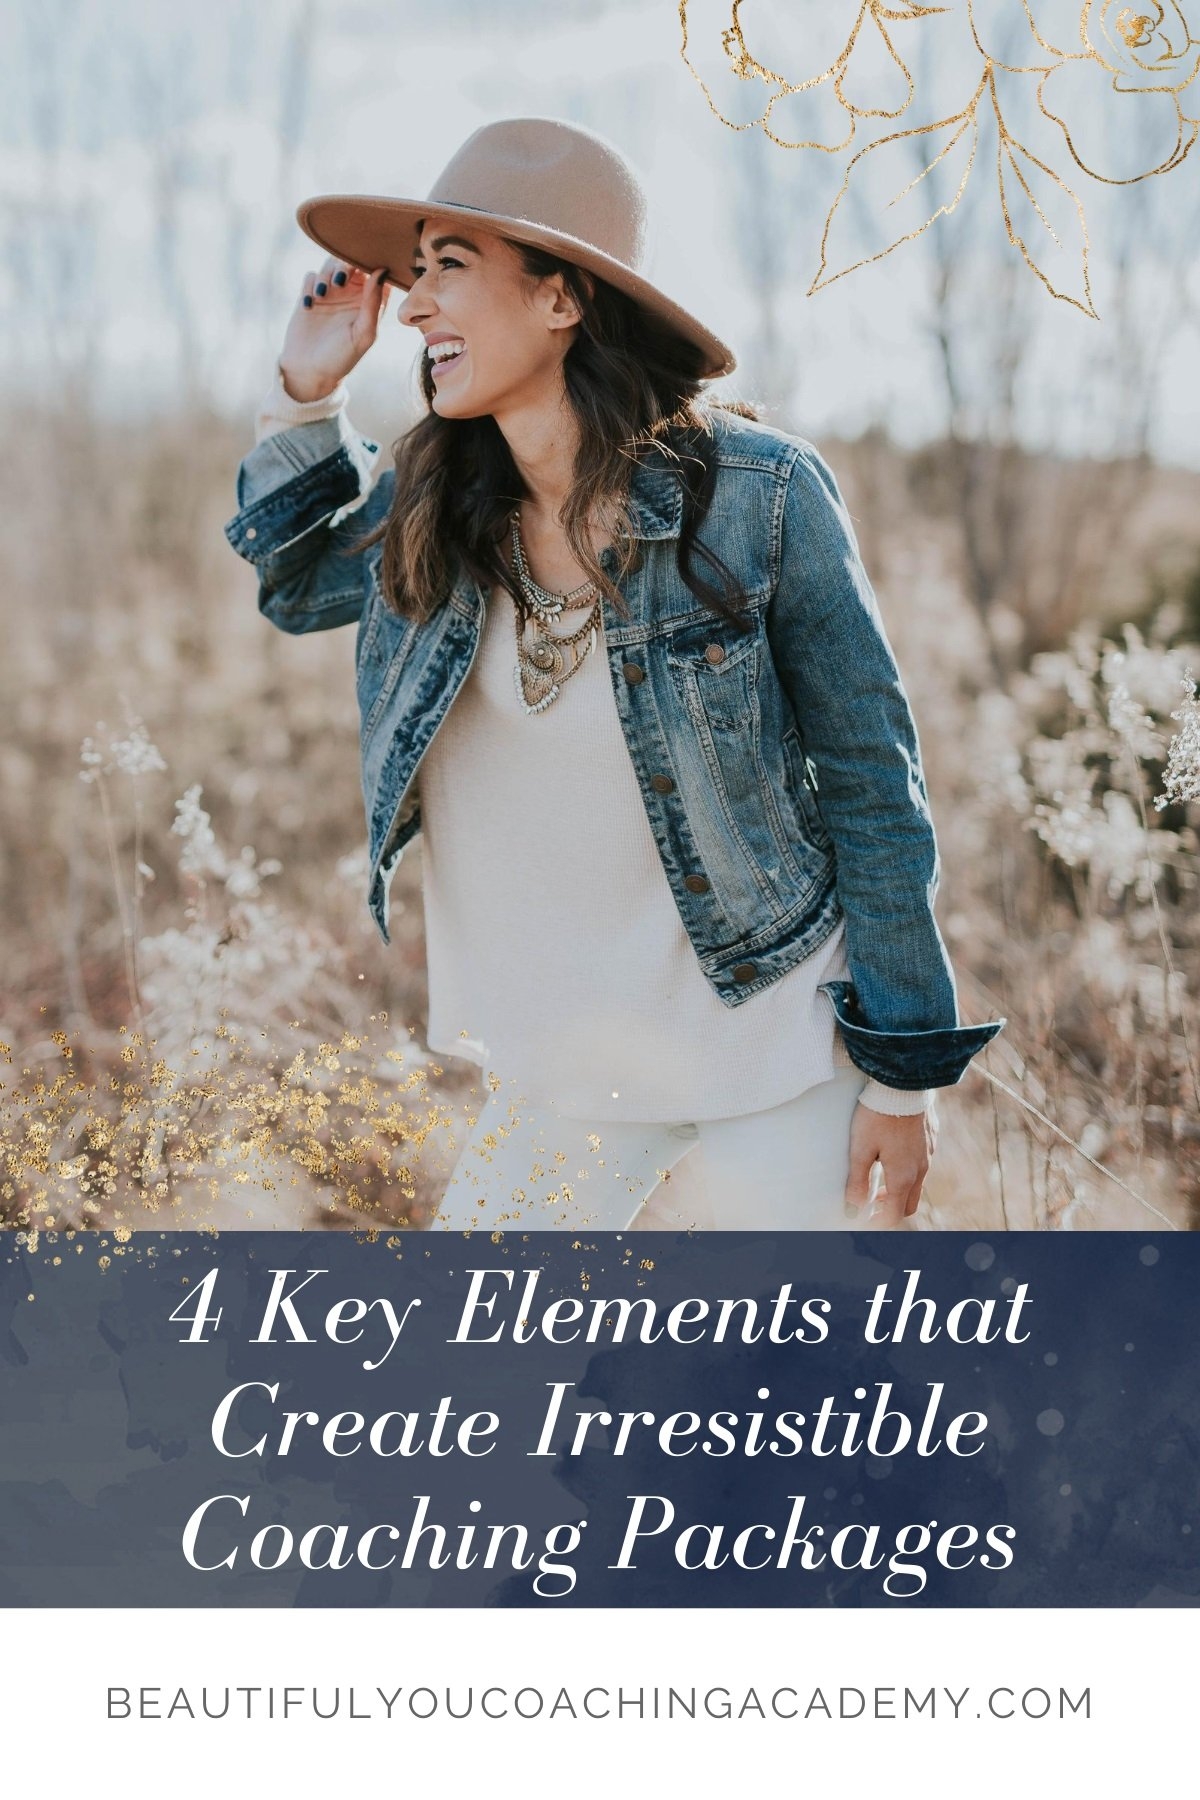 4 Key Elements that Create Irresistible Coaching Packages